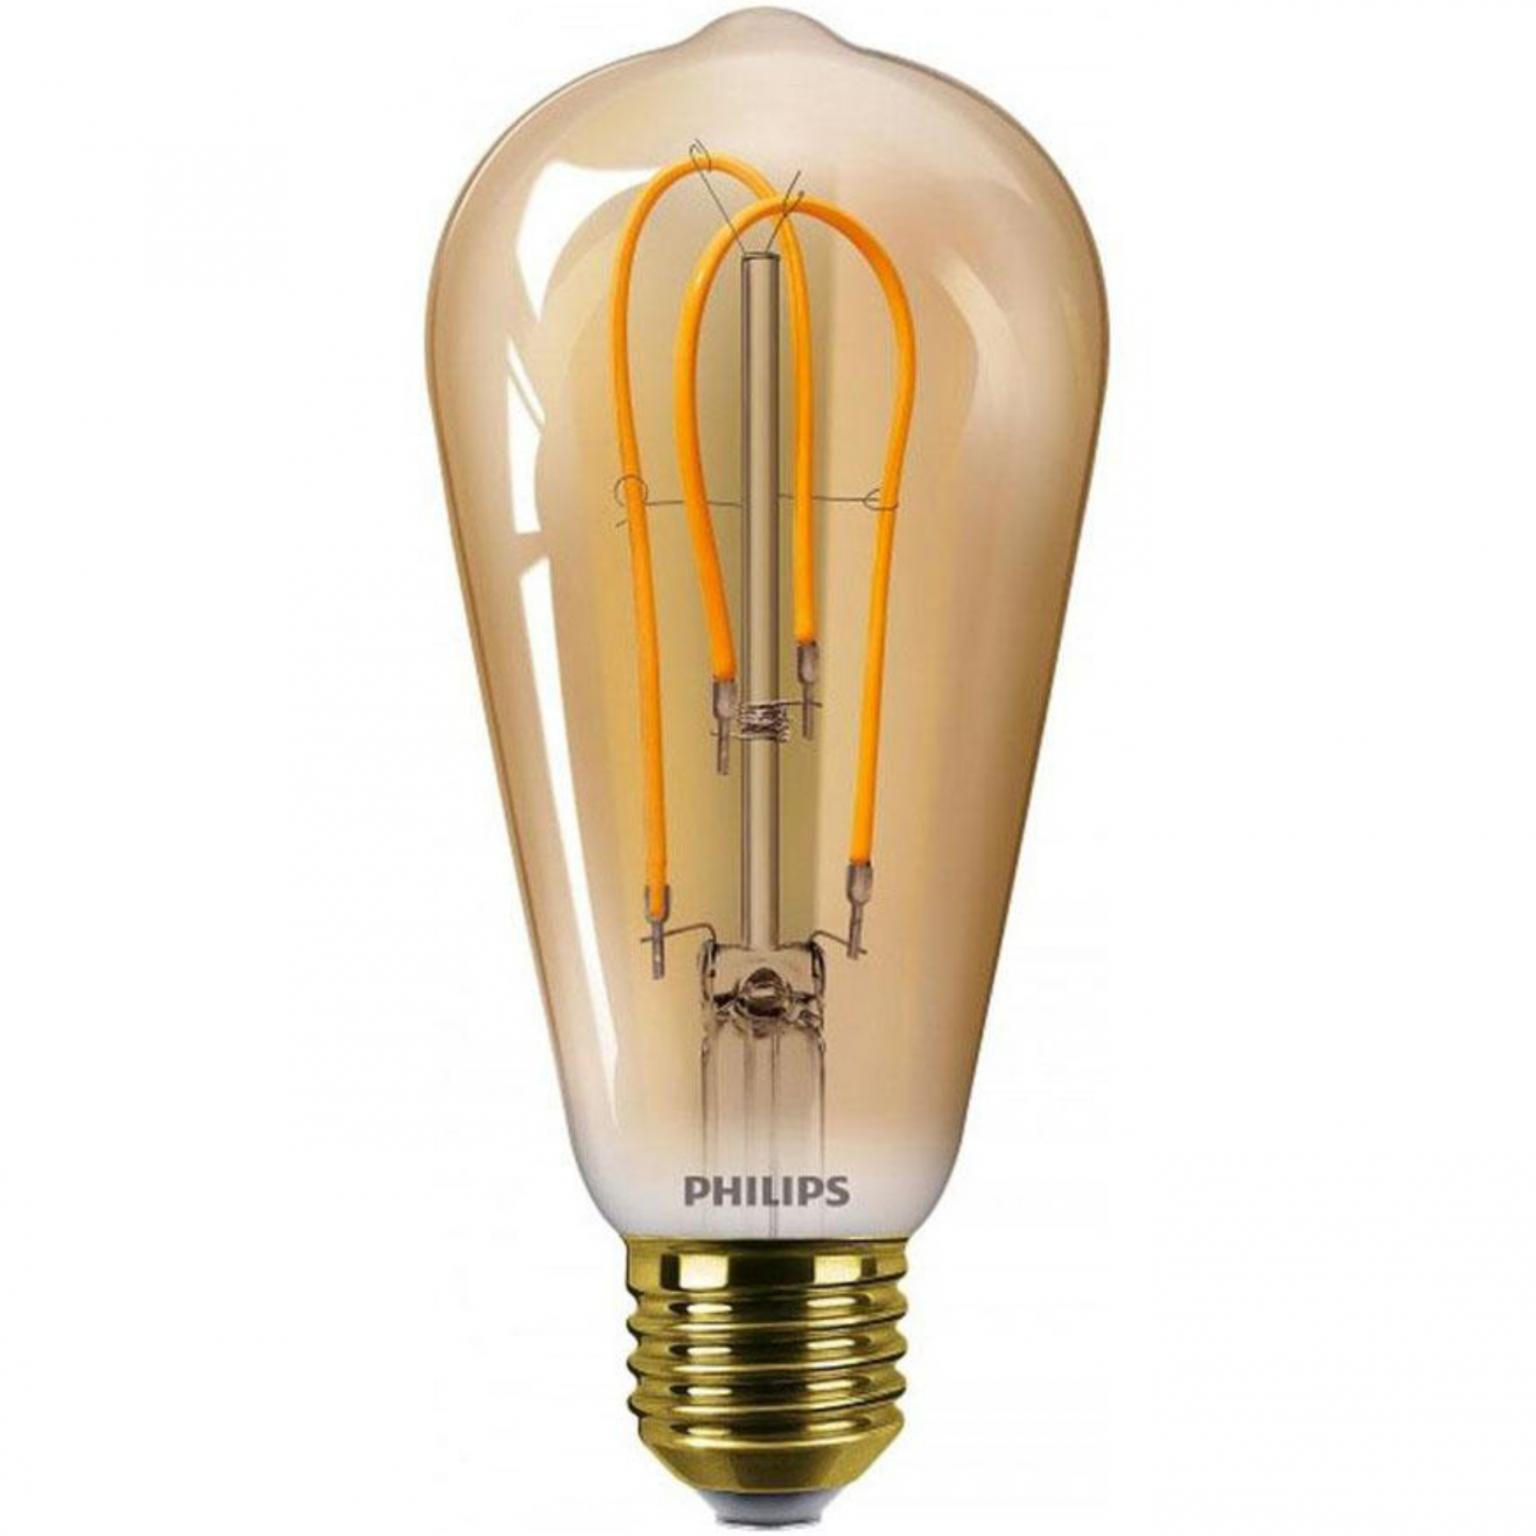 Philips Led Lamp - 250 lumen